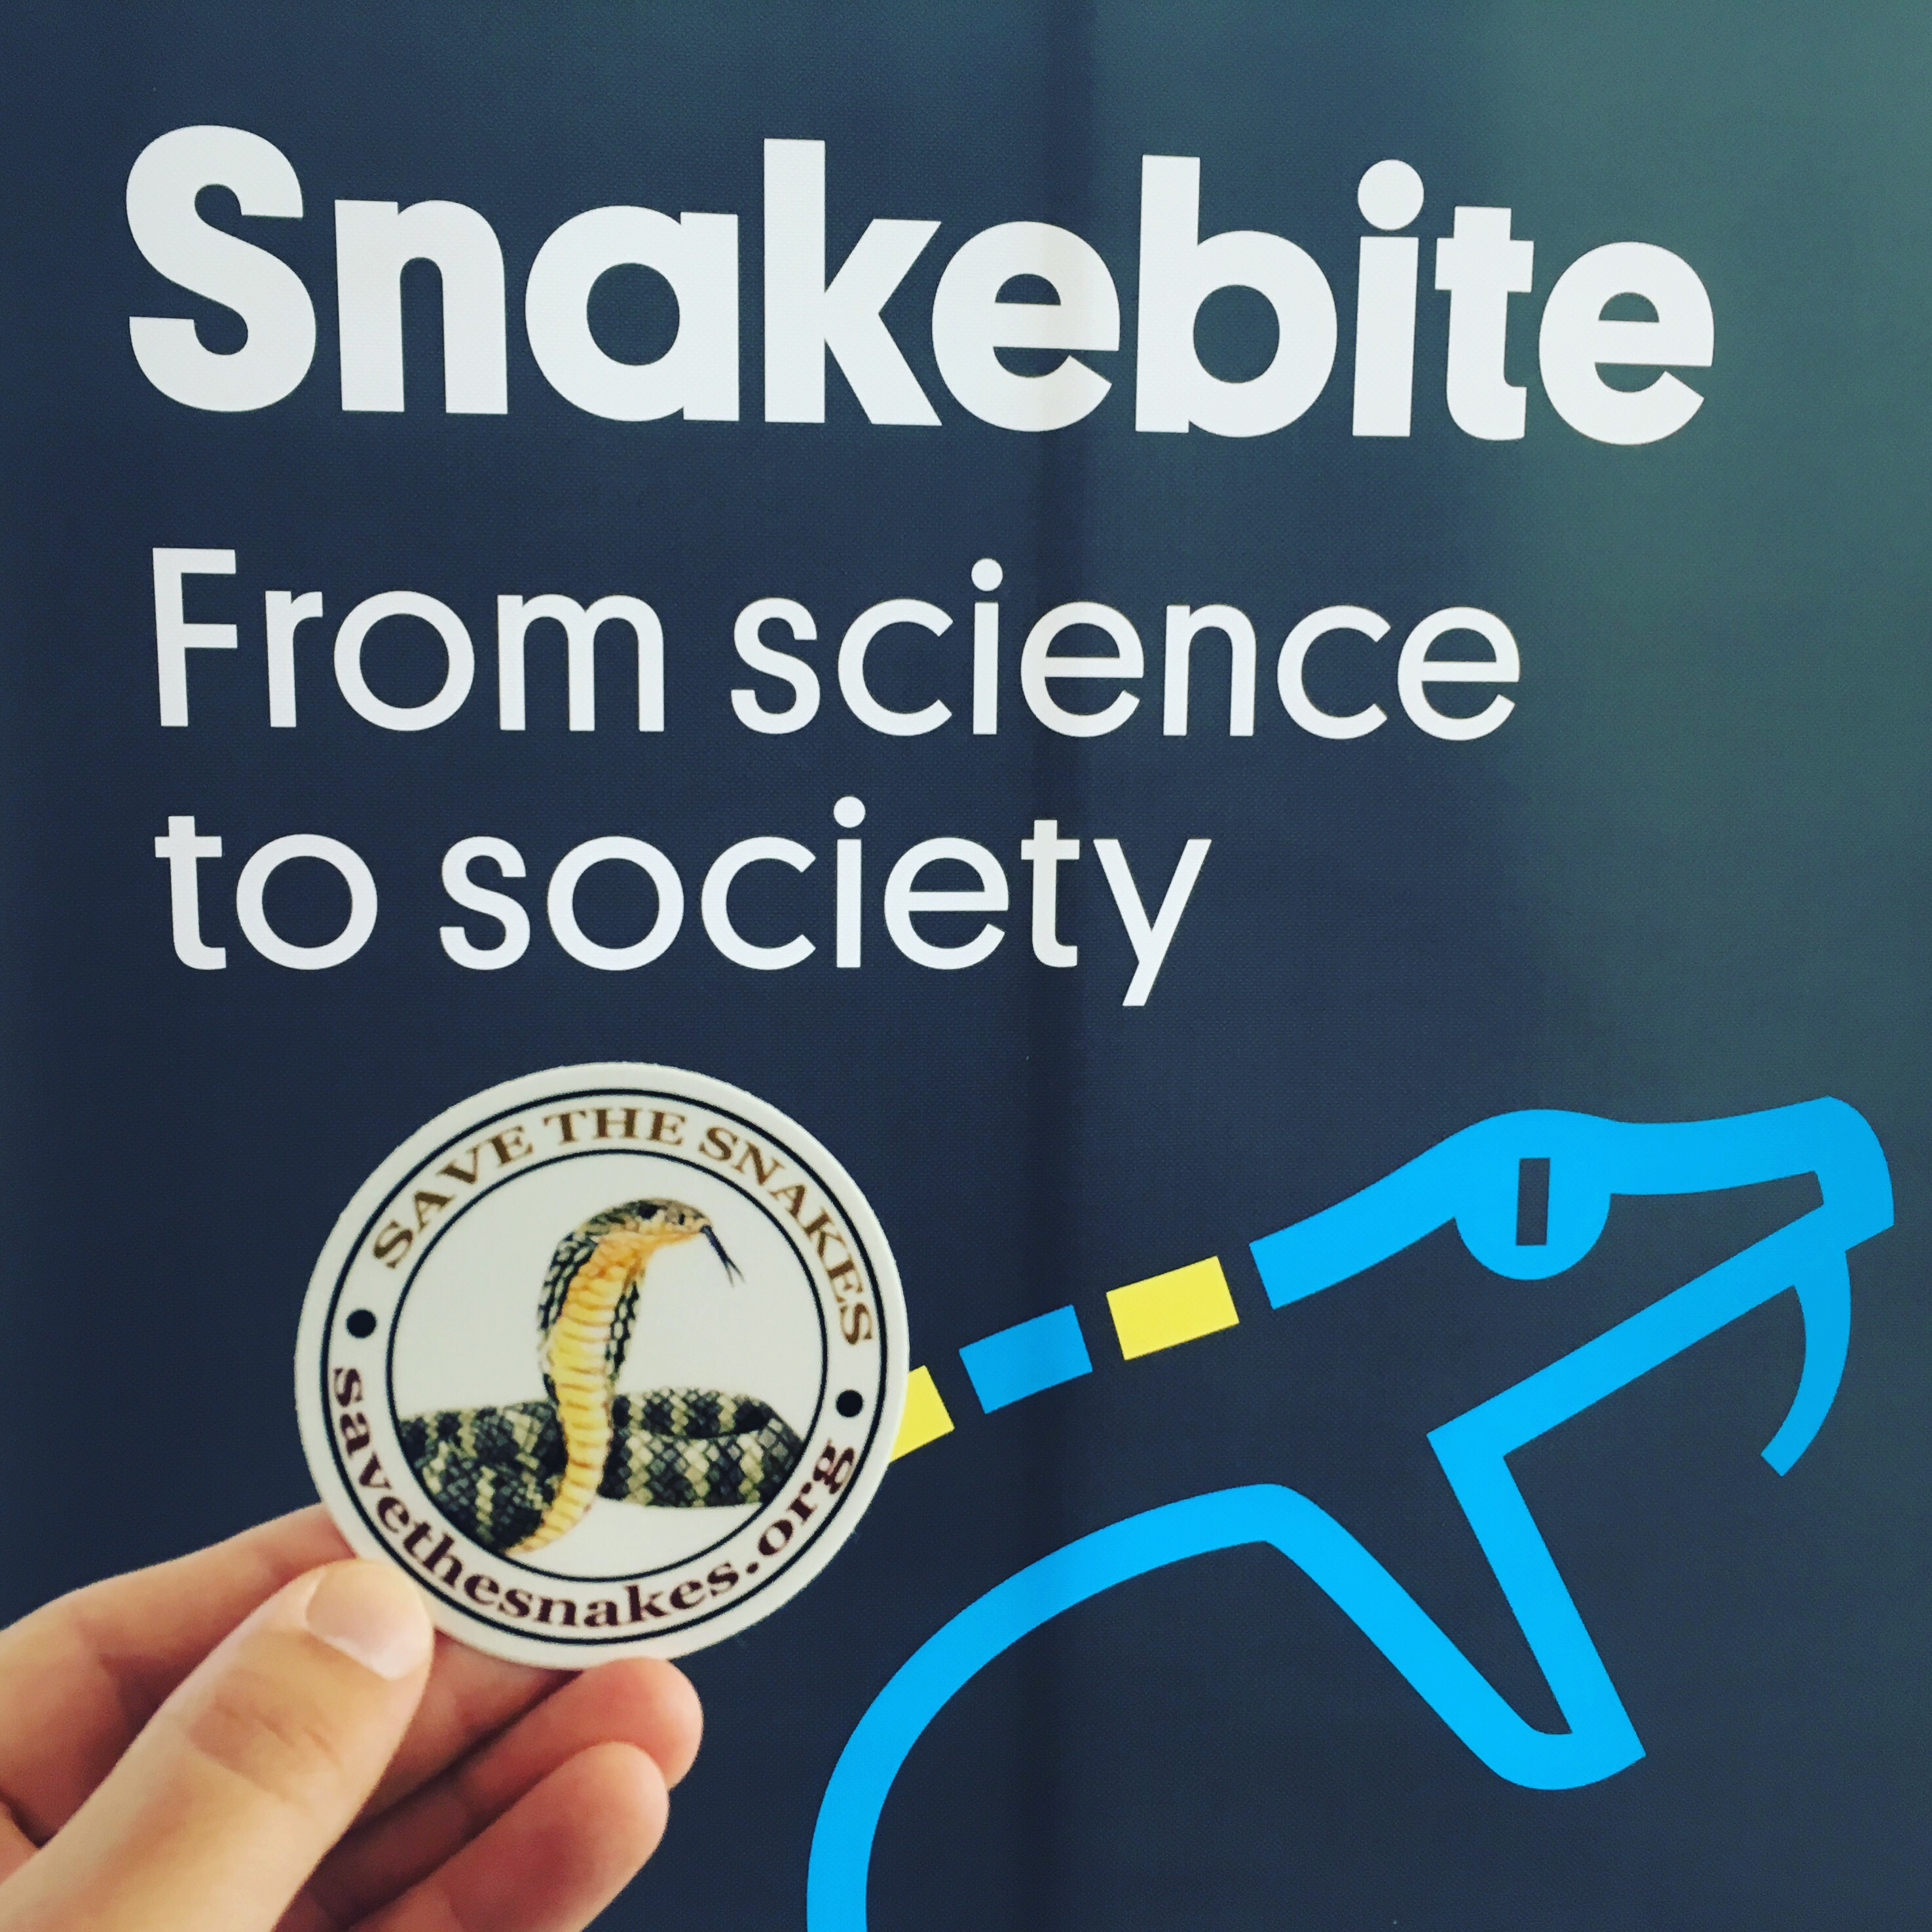 The International Snakebite Conference is the First Step Towards Solving a Neglected Tropical Disease